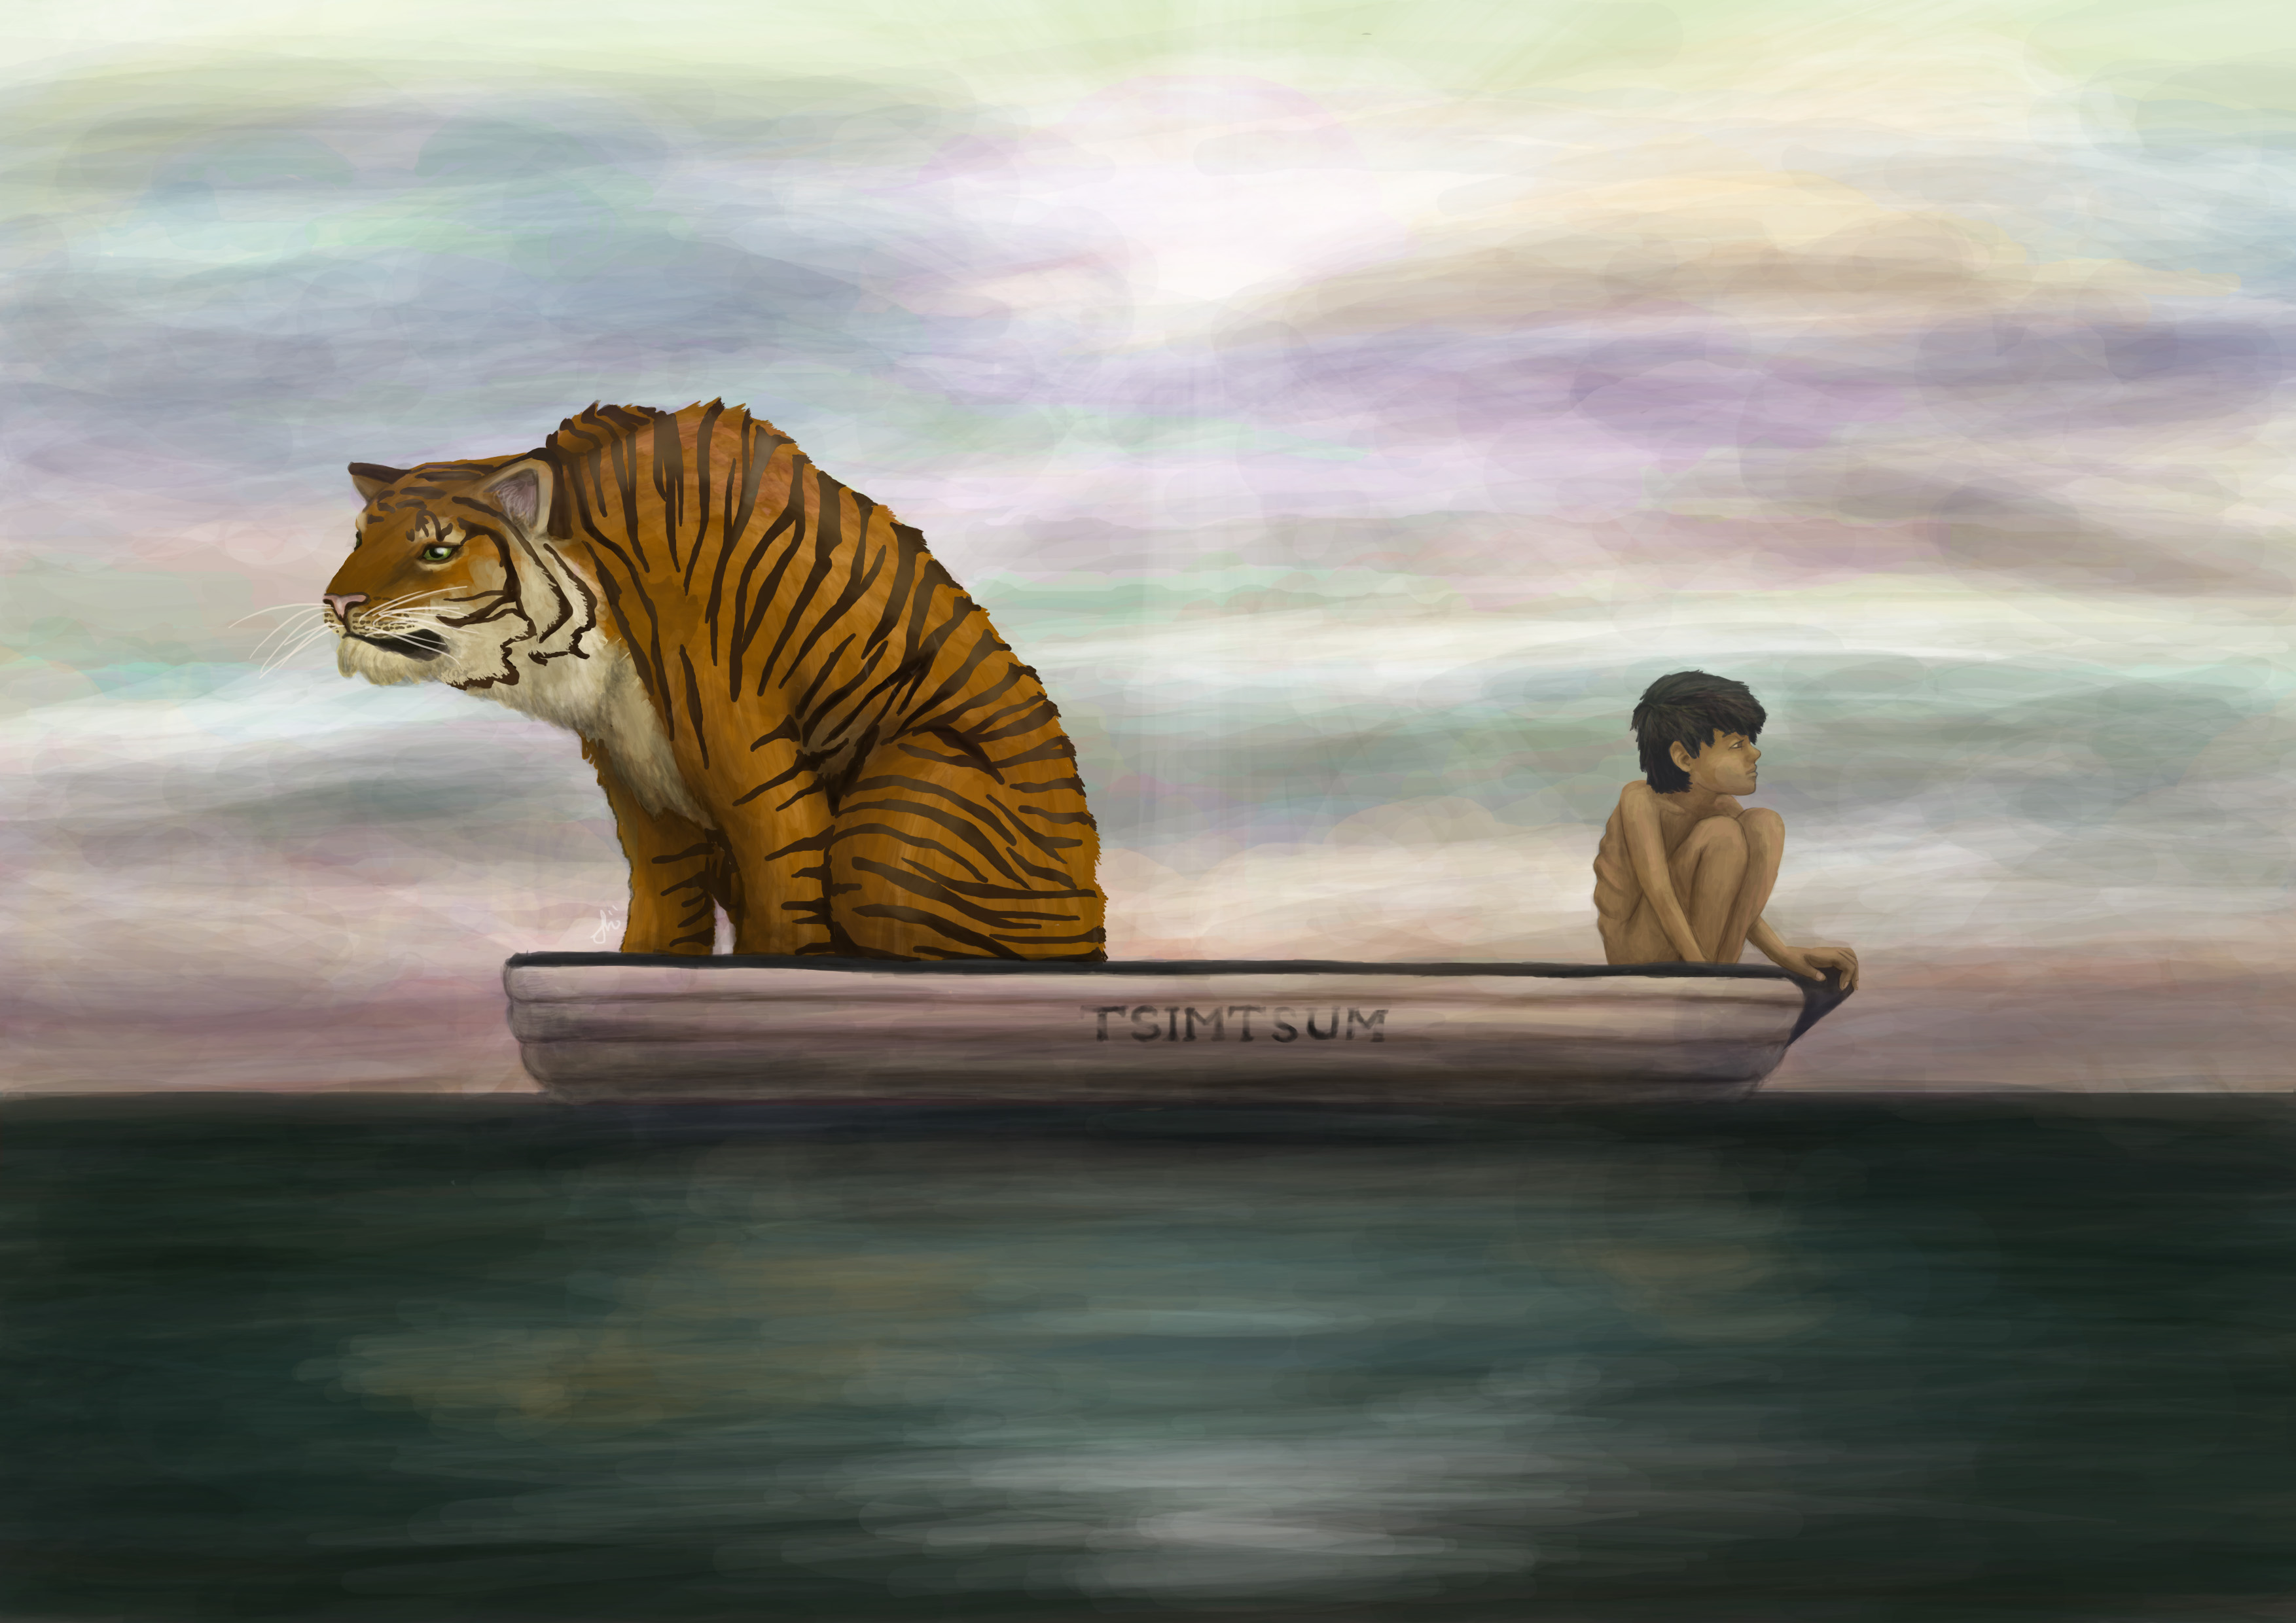 Tiger Live Wallpaper Iphone X Life Of Pi Full Hd Wallpaper And Background Image